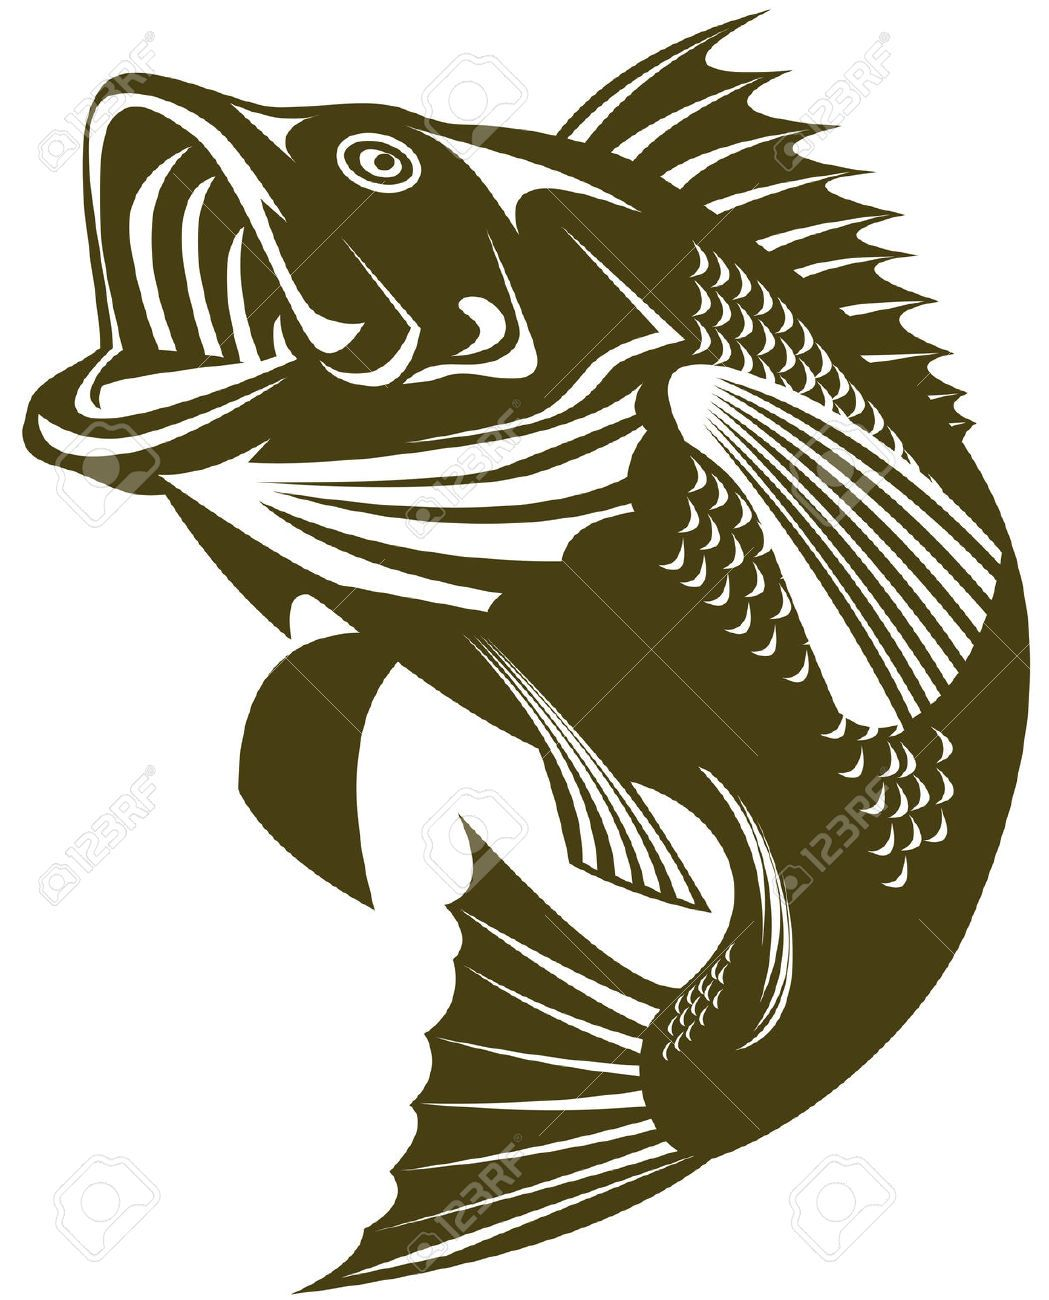 Trout clipart largemouth bass. Cliparts stock vector and